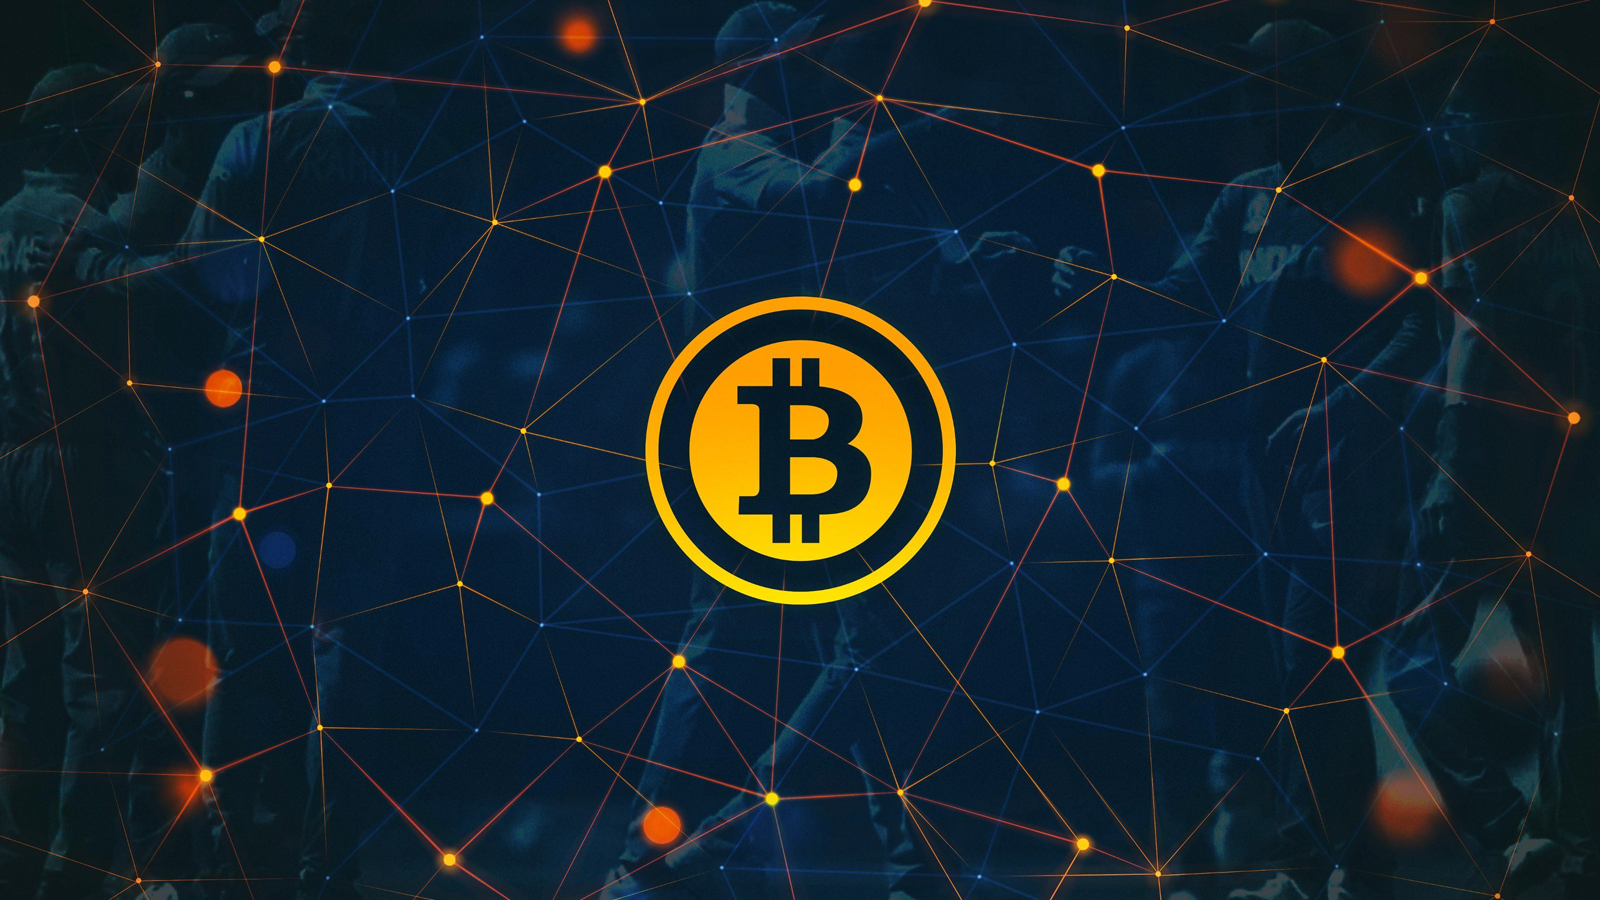 More and more betting websites start cooperatong with cryptocurrency to let bettors make deposits in bitcoin. litecoin, etc.